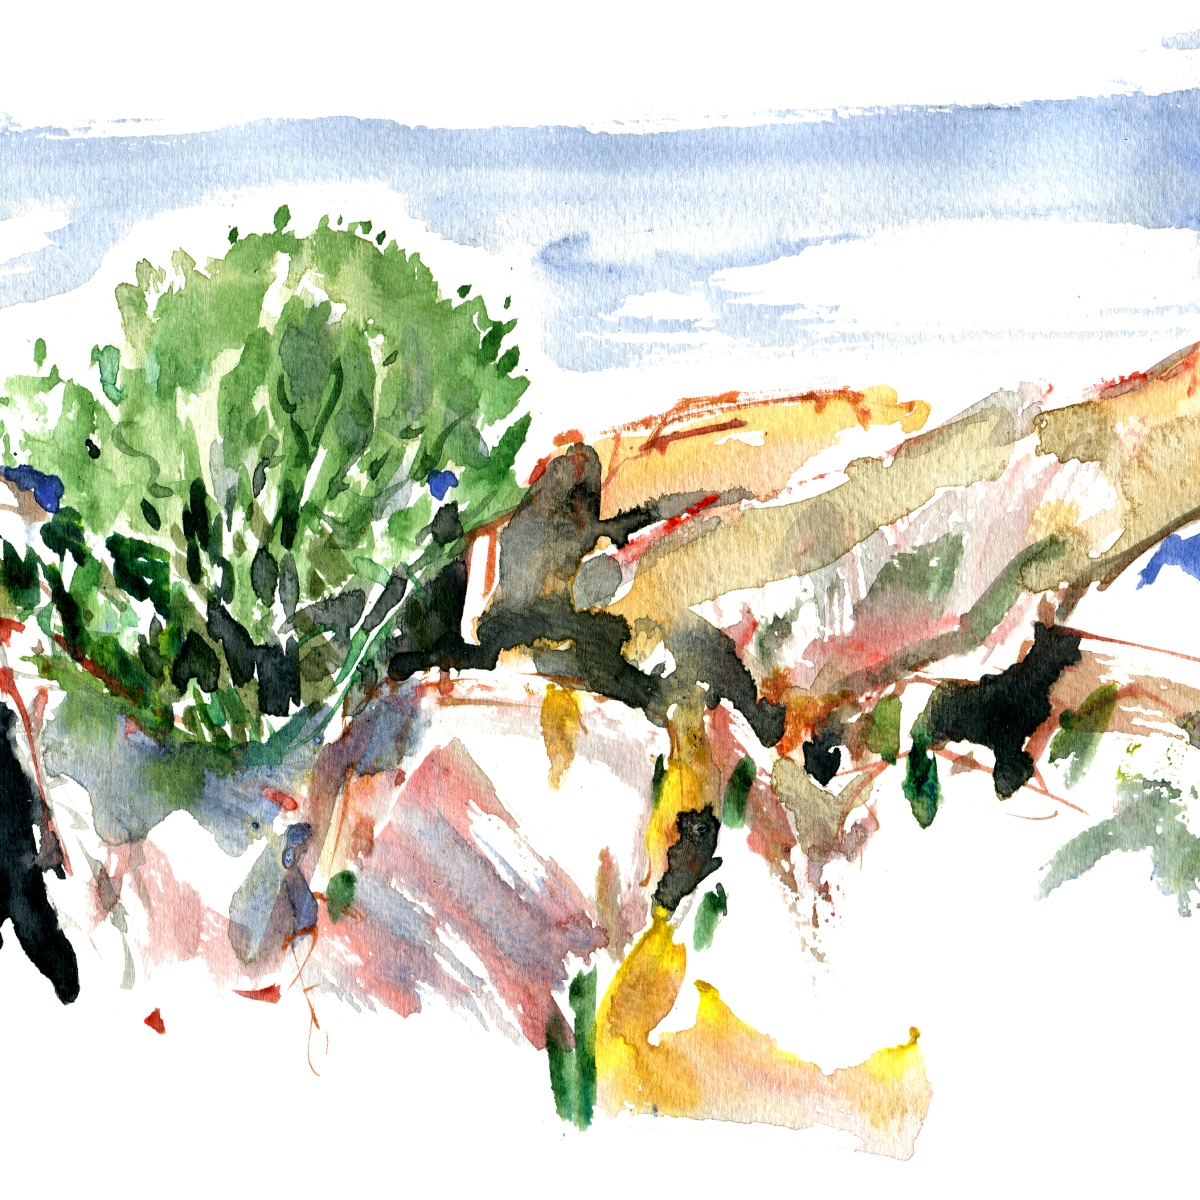 Rocks, Bornholm, Watercolor by Frits Ahlefeldt